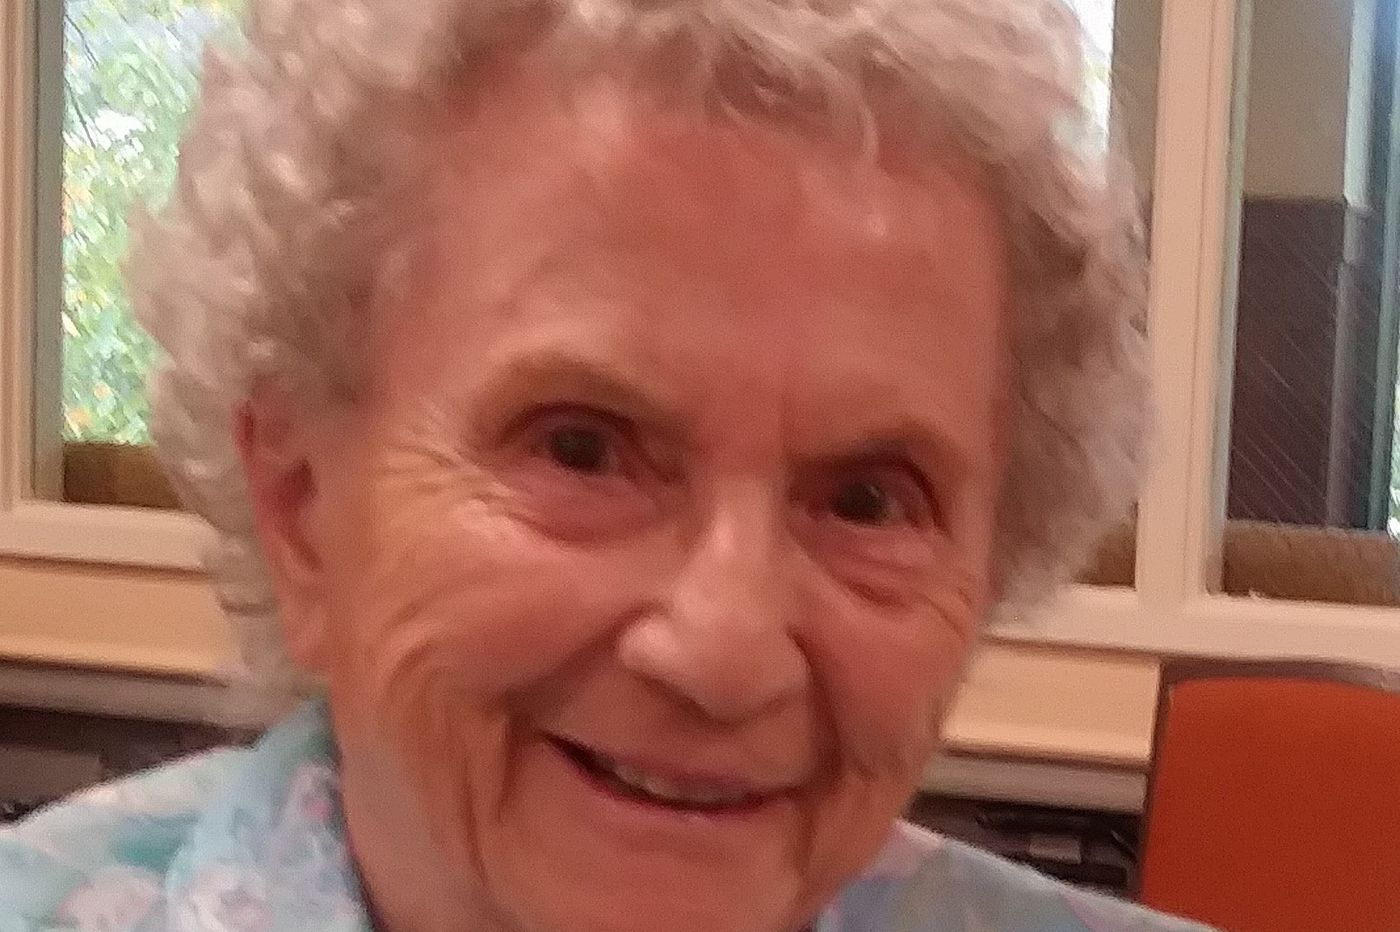 Ellen G. Craney, 88, a longtime teacher in the West Chester Area School District